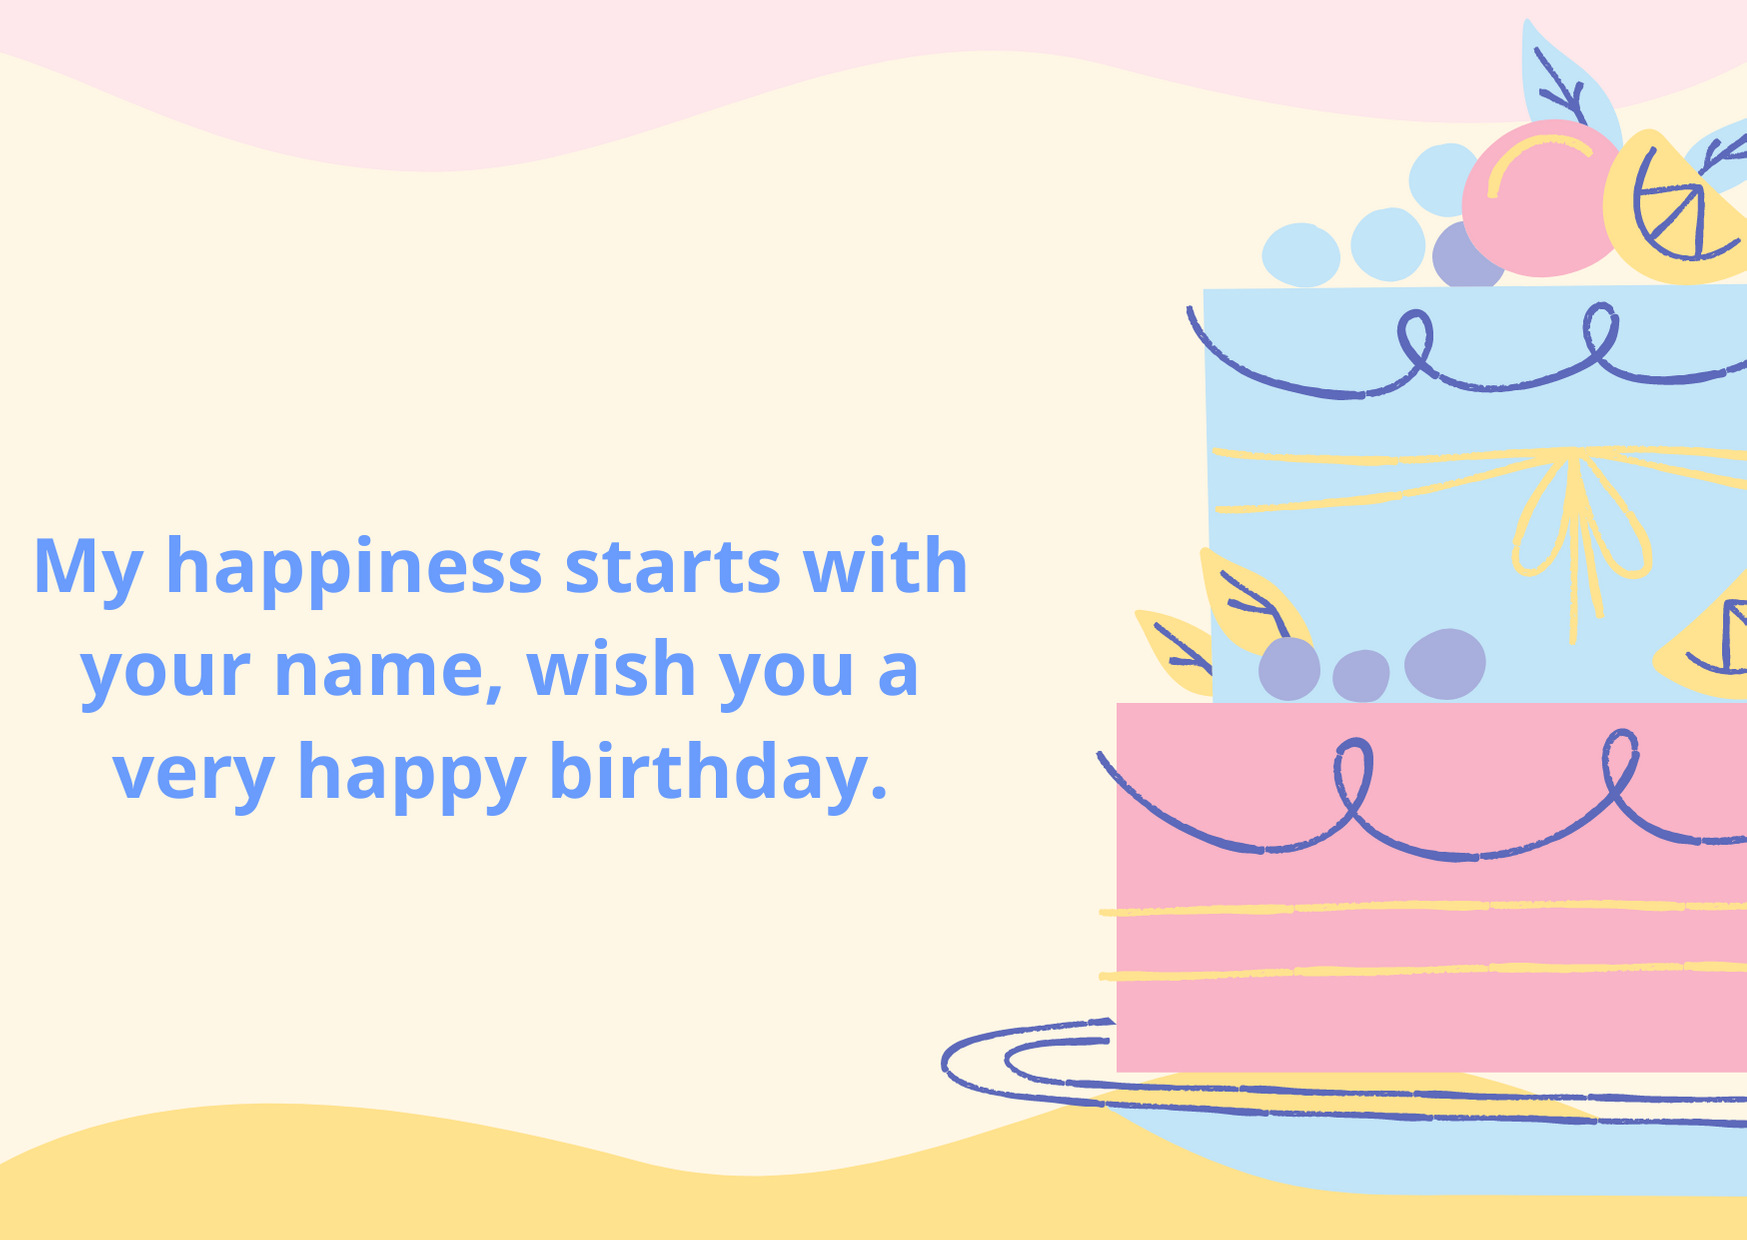 romantic birthday greetings for wife